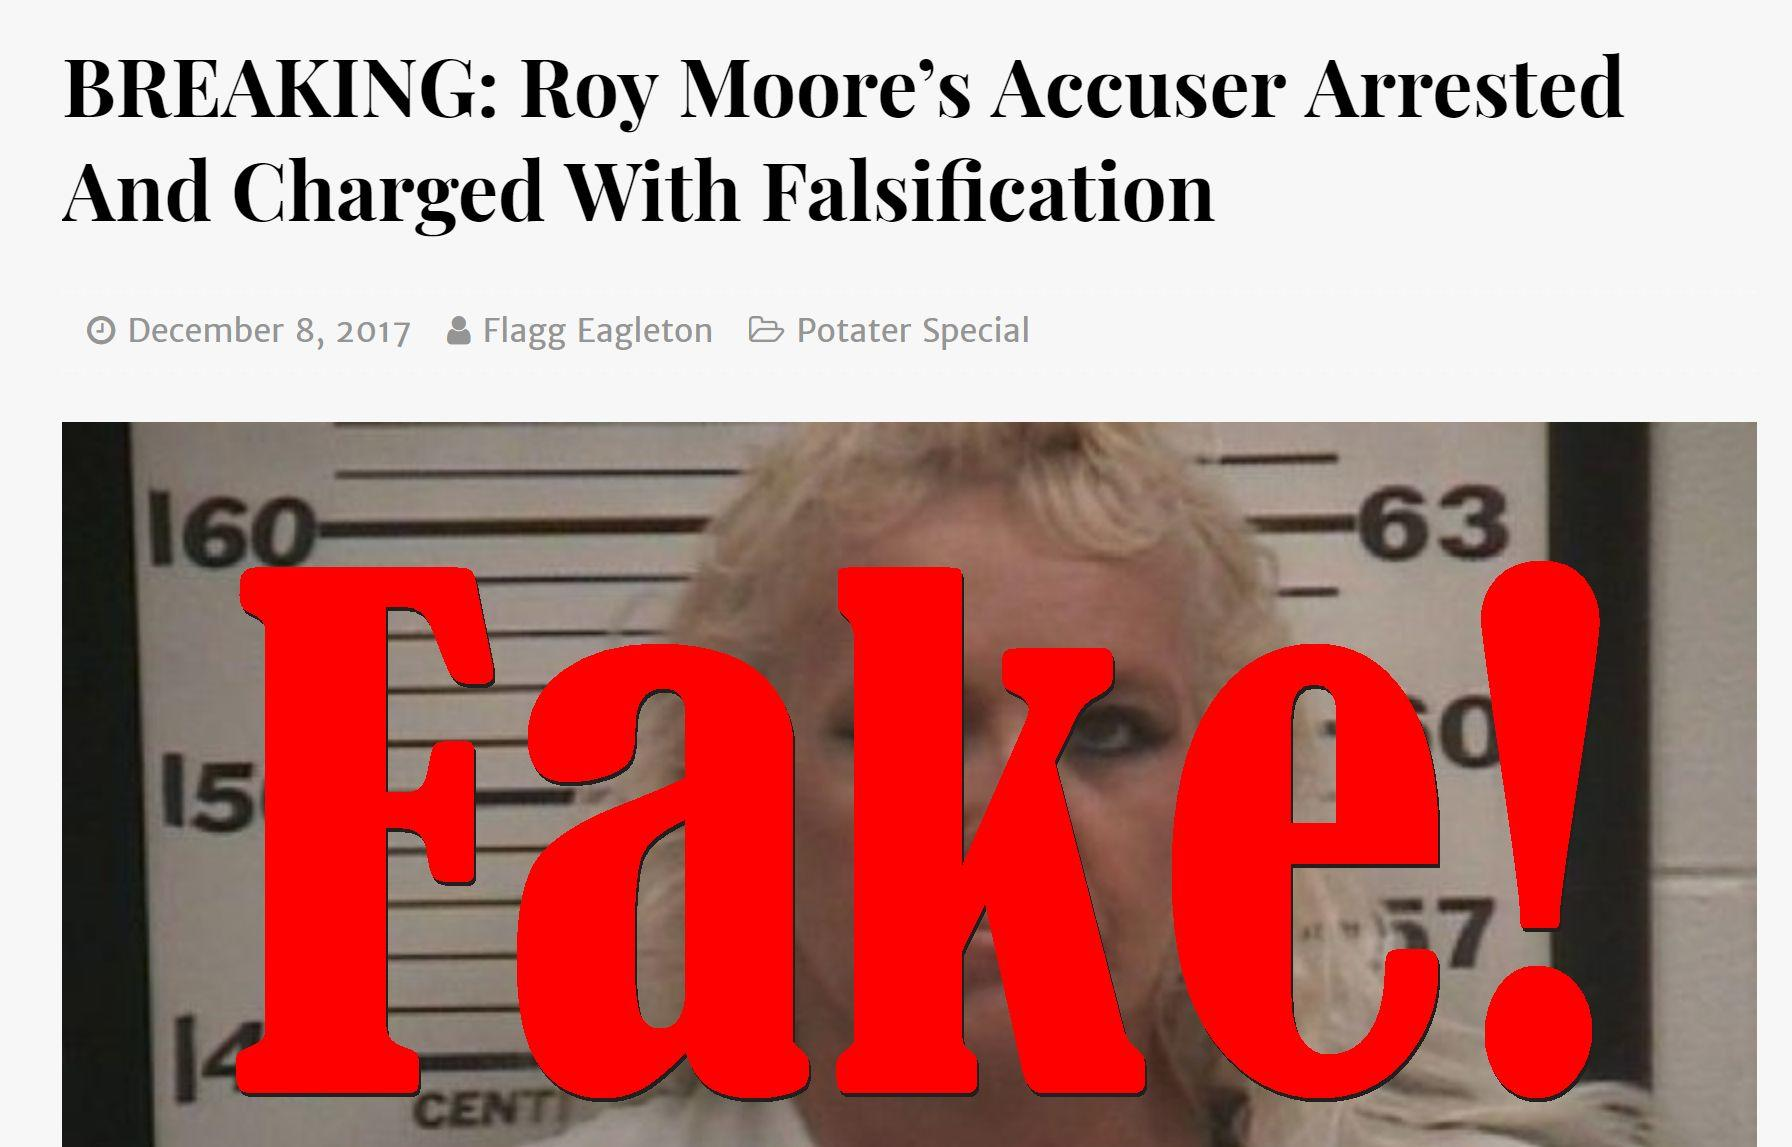 Fake News: Roy Moore's Accuser NOT Arrested And Charged With Falsification